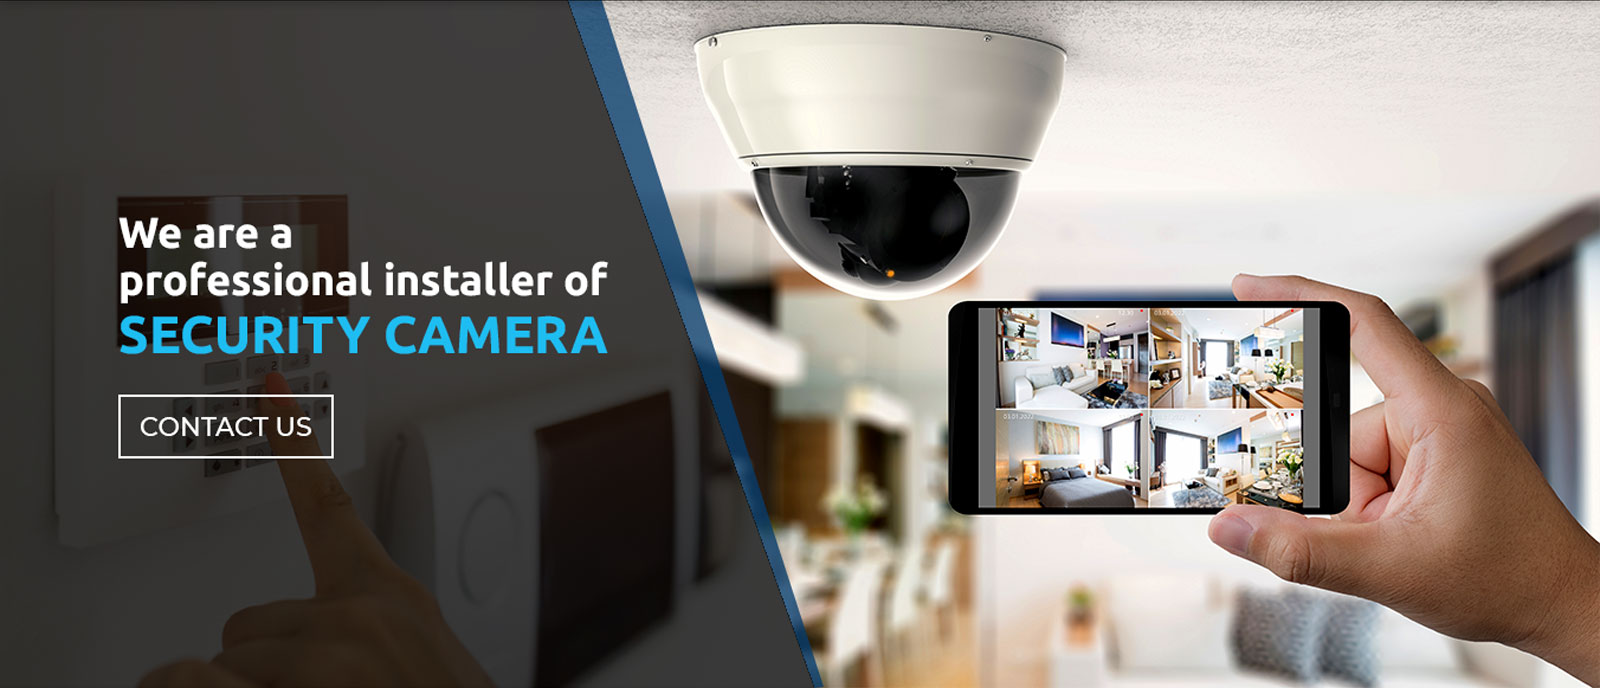 Security Camera Installer Toronto A.D.A Audio Plus - Home CCTV Installation North York